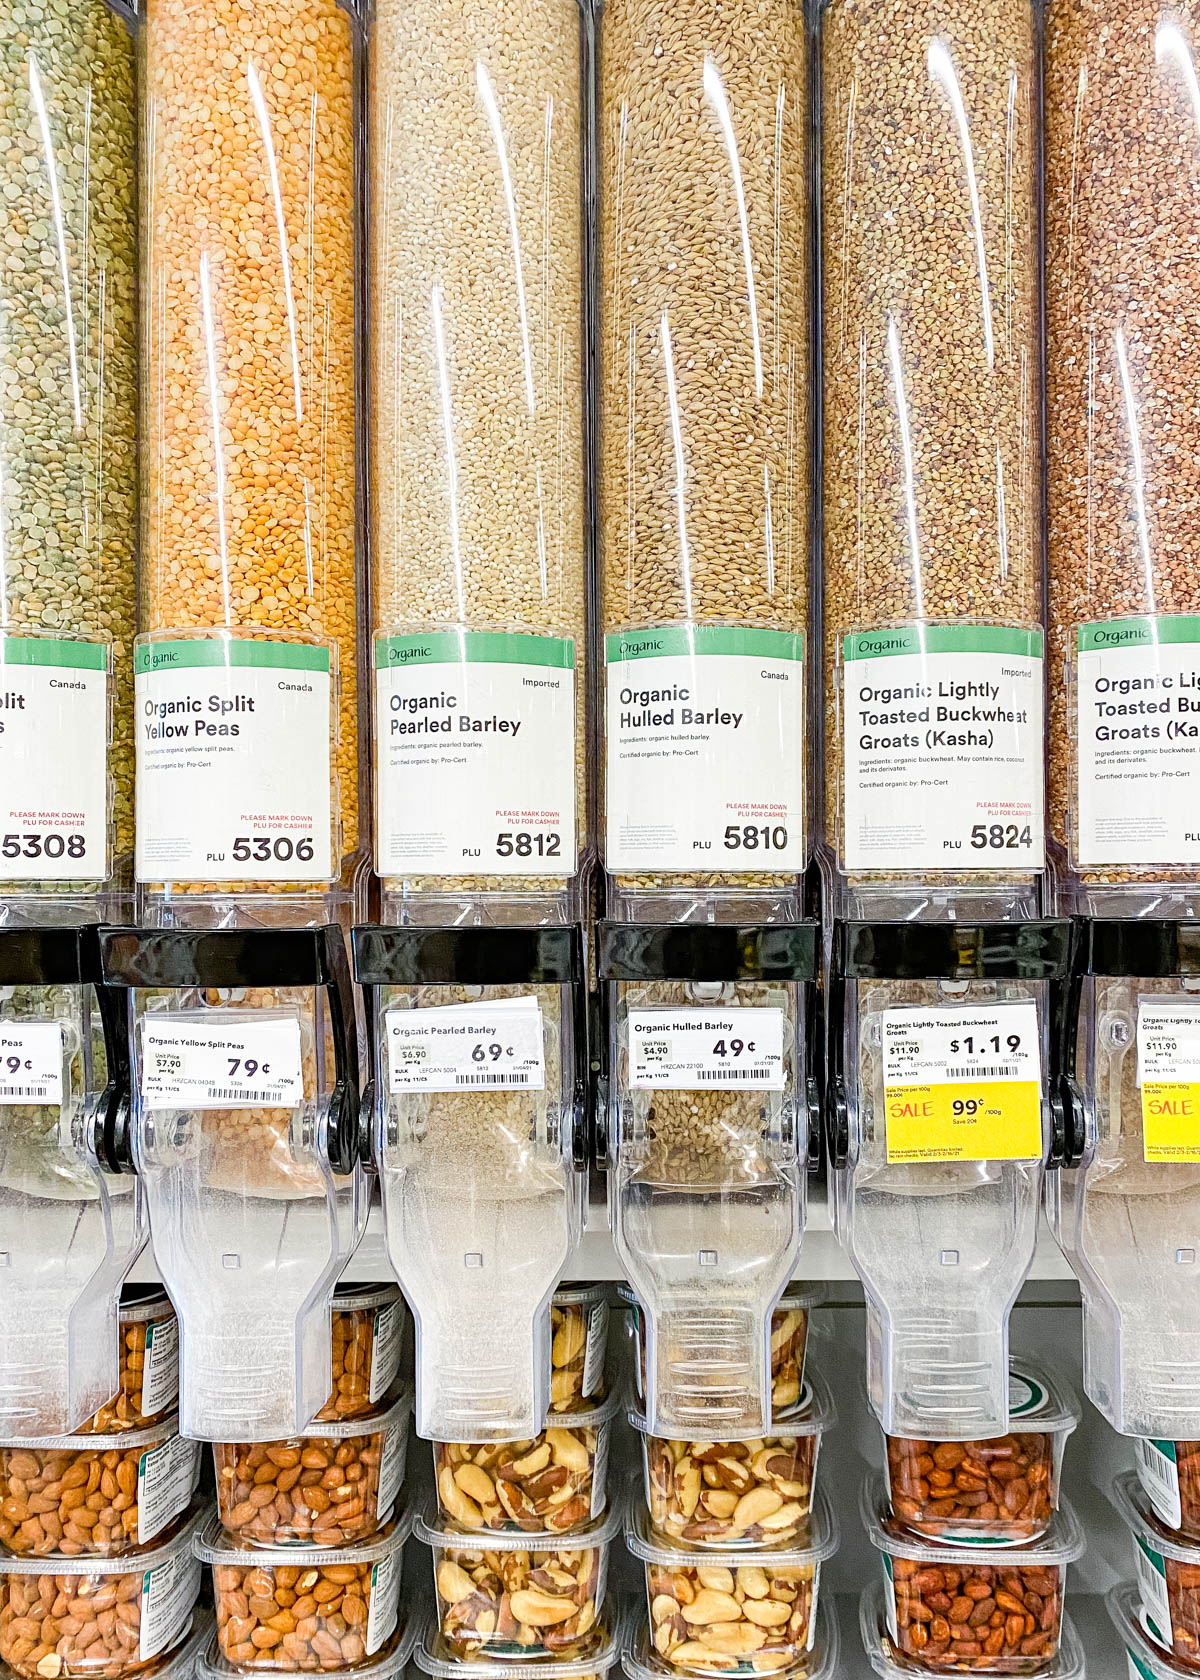 Bulk section of a grocery store showing barley in a hopper.